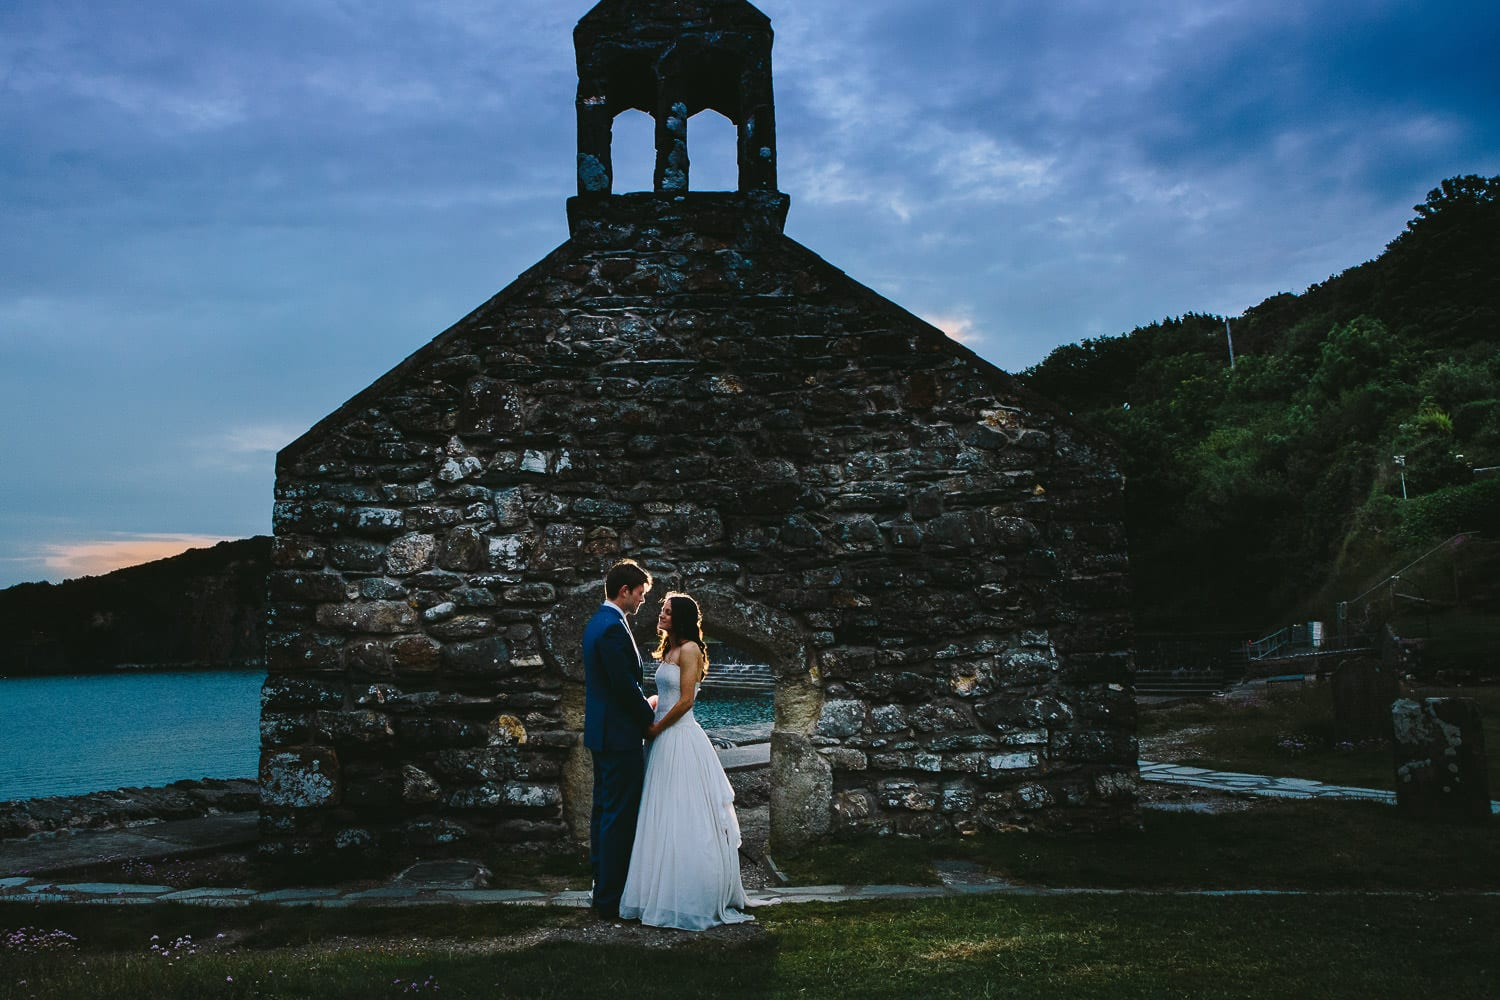 The bride and groom outside a ruined church